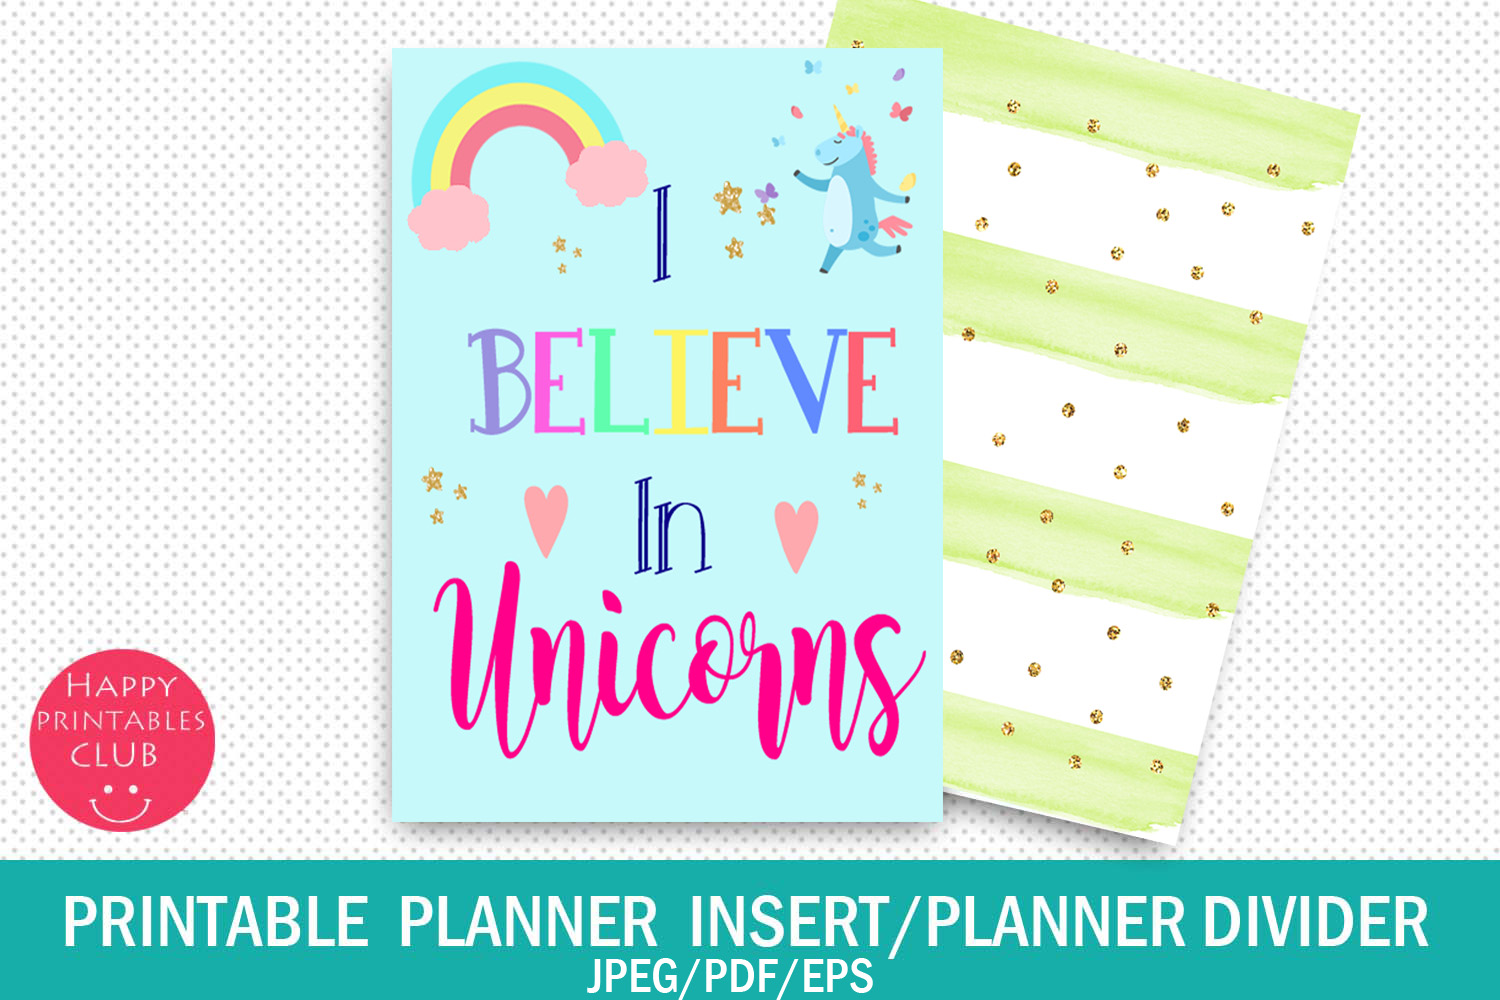 photo relating to Printable Dividers named Printable Planner Add-Planner Divider-Planner Equipment